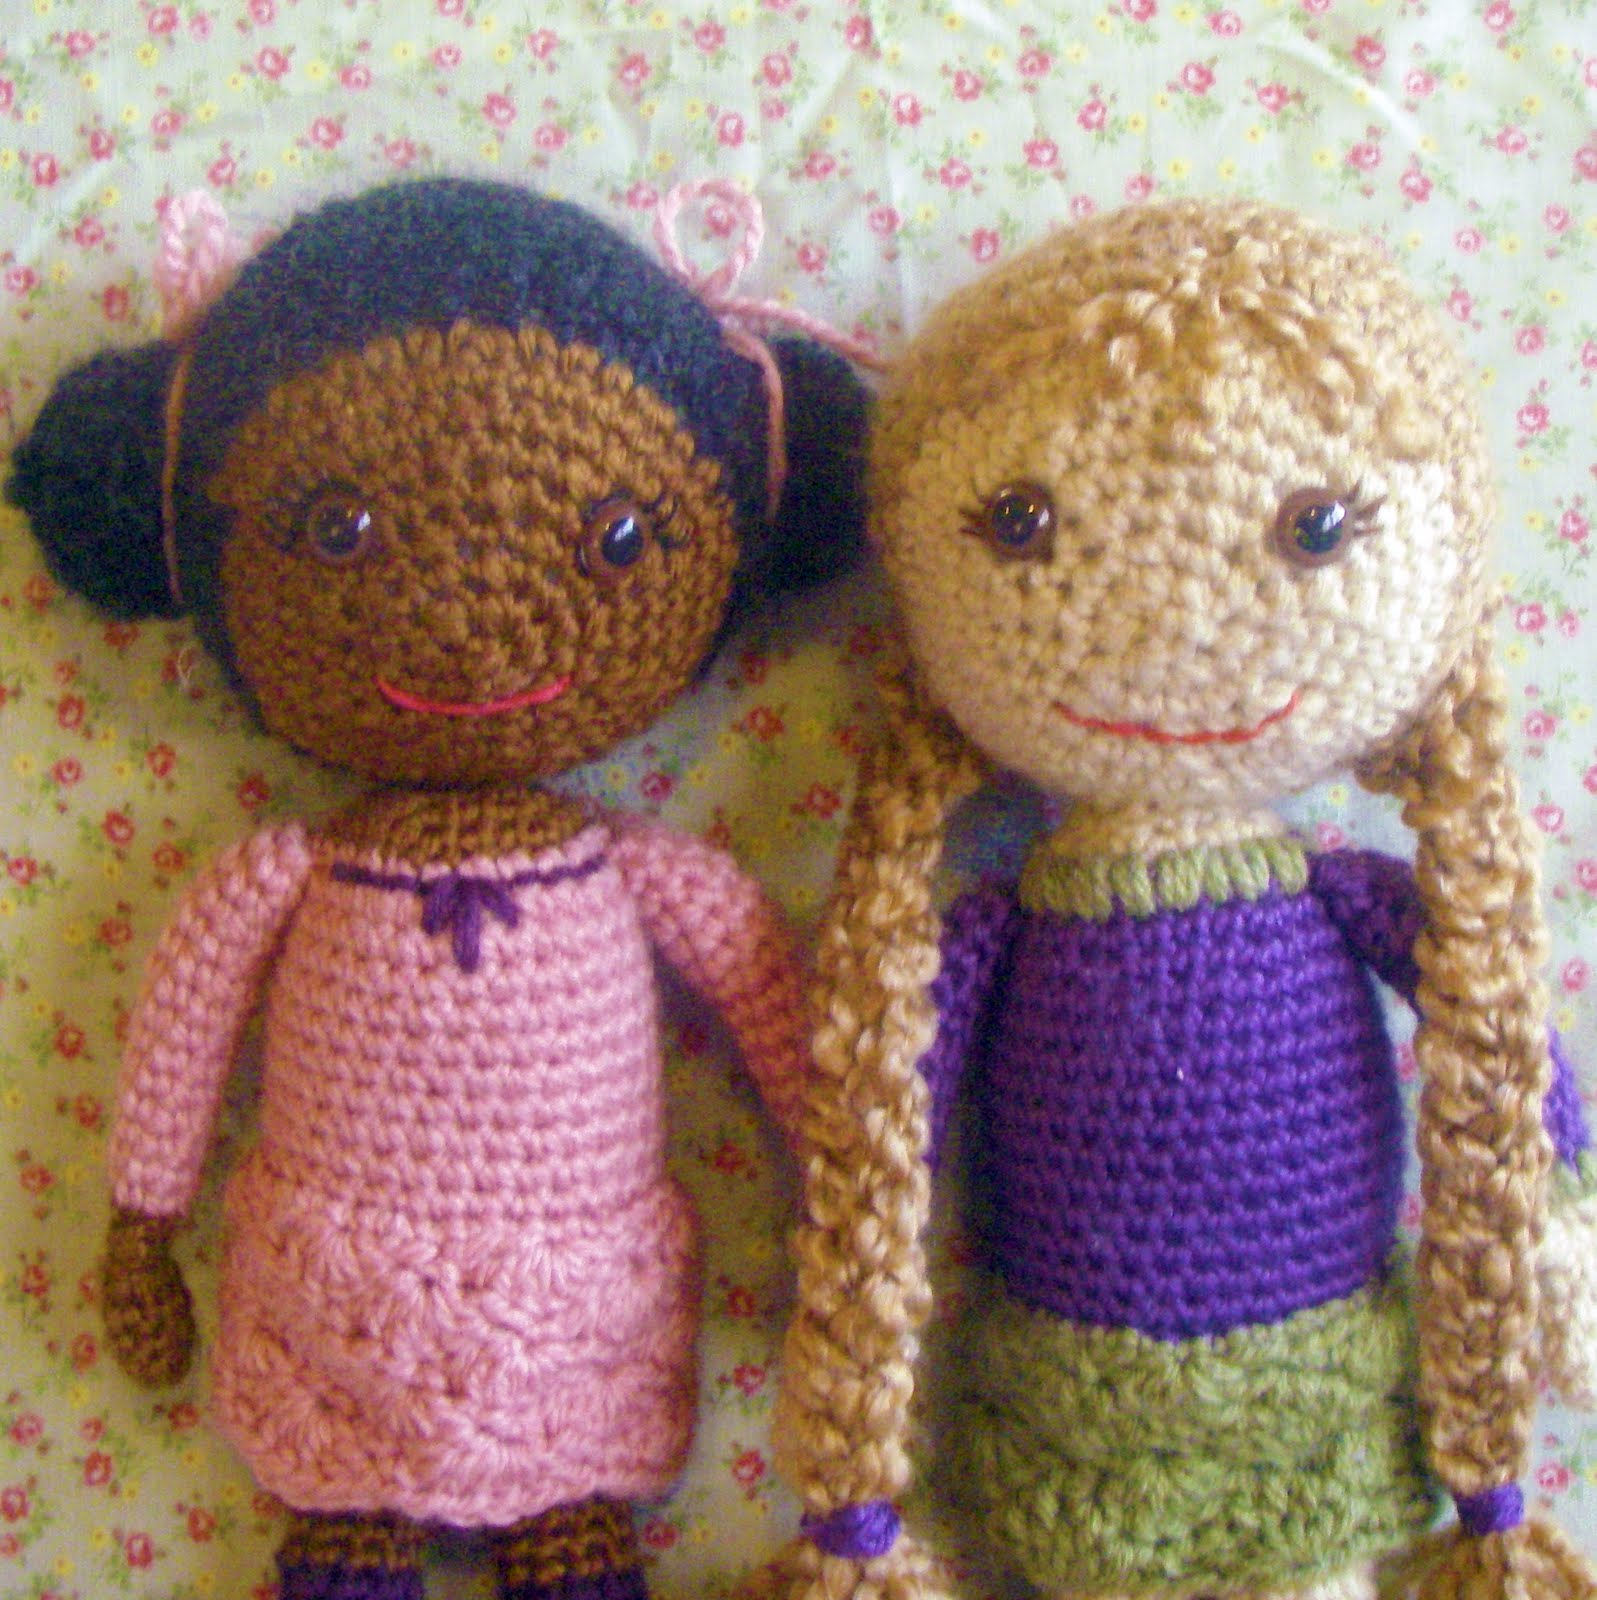 Crochet Doll Pattern Easy : !!!IMPORTANT!!! All content has been moved to MAMACHEE.COM ...